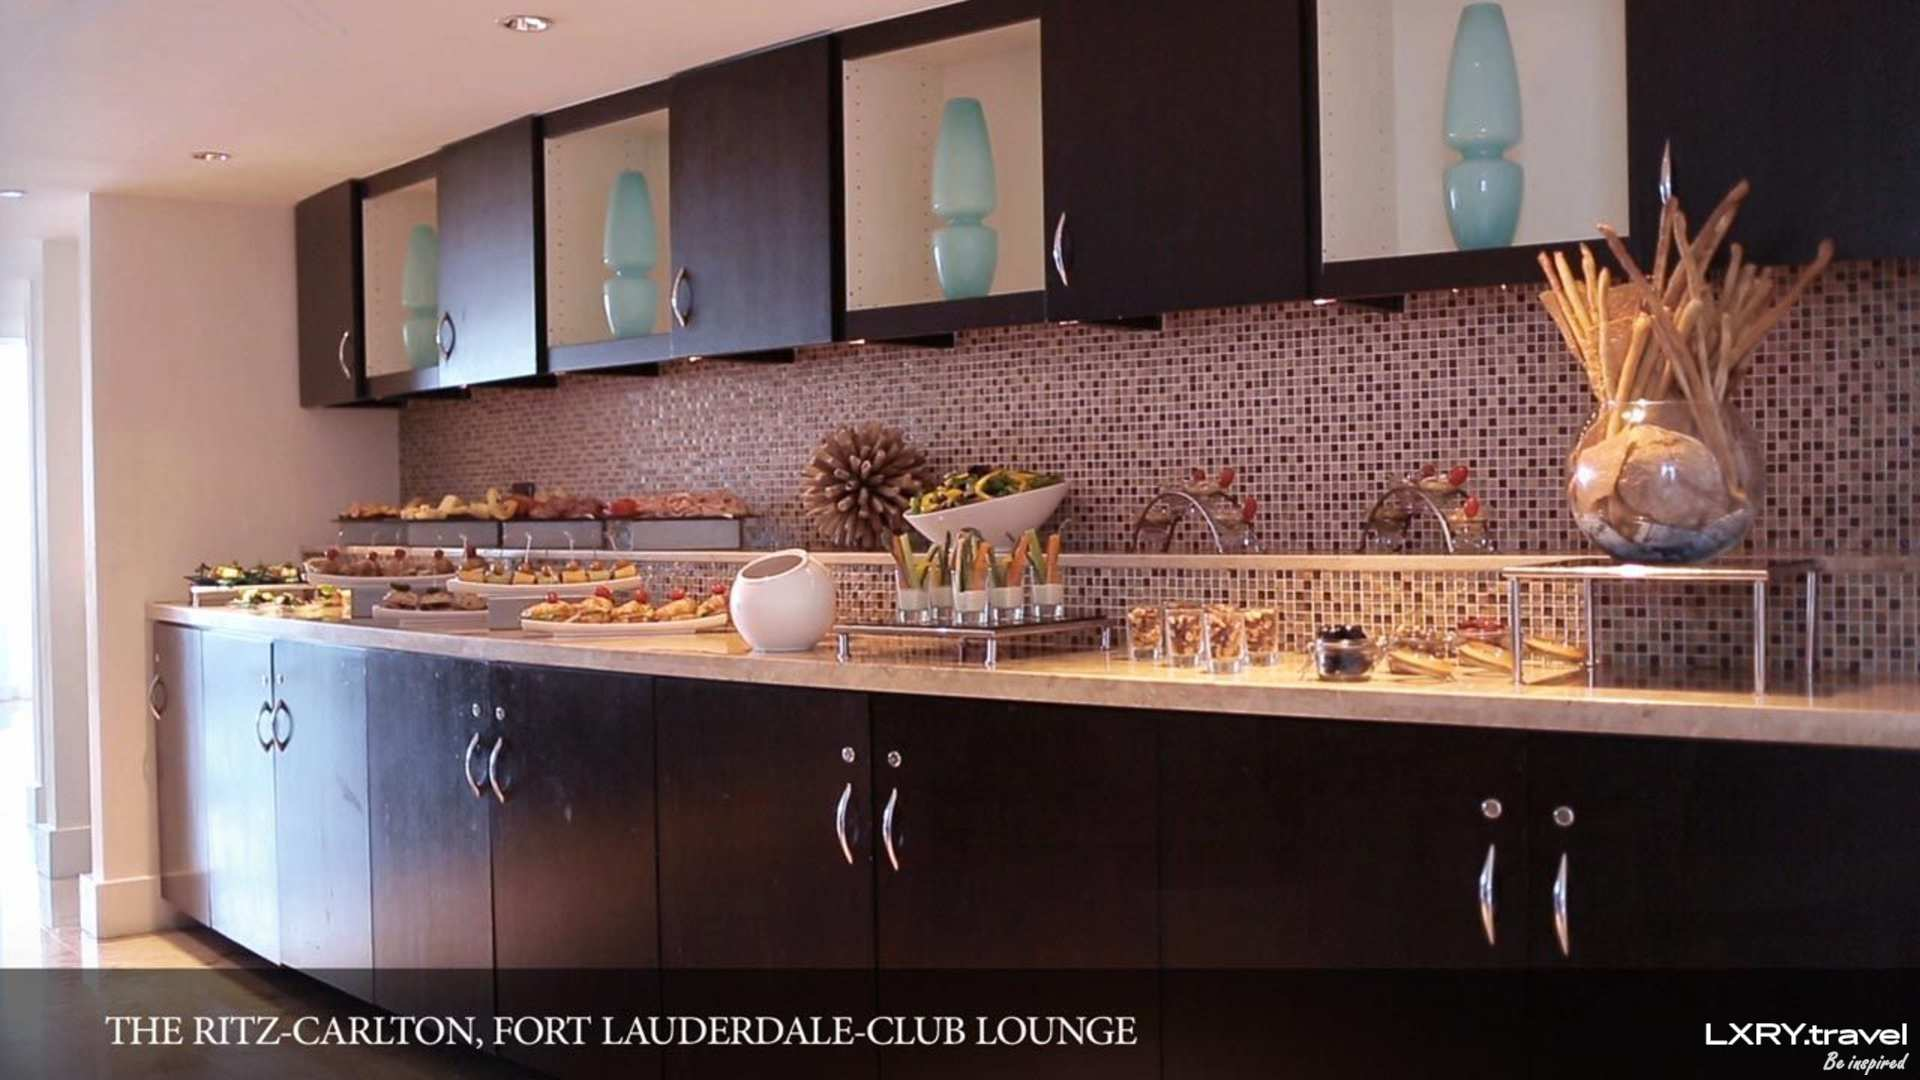 The Ritz-Carlton, Fort Lauderdale 42/43